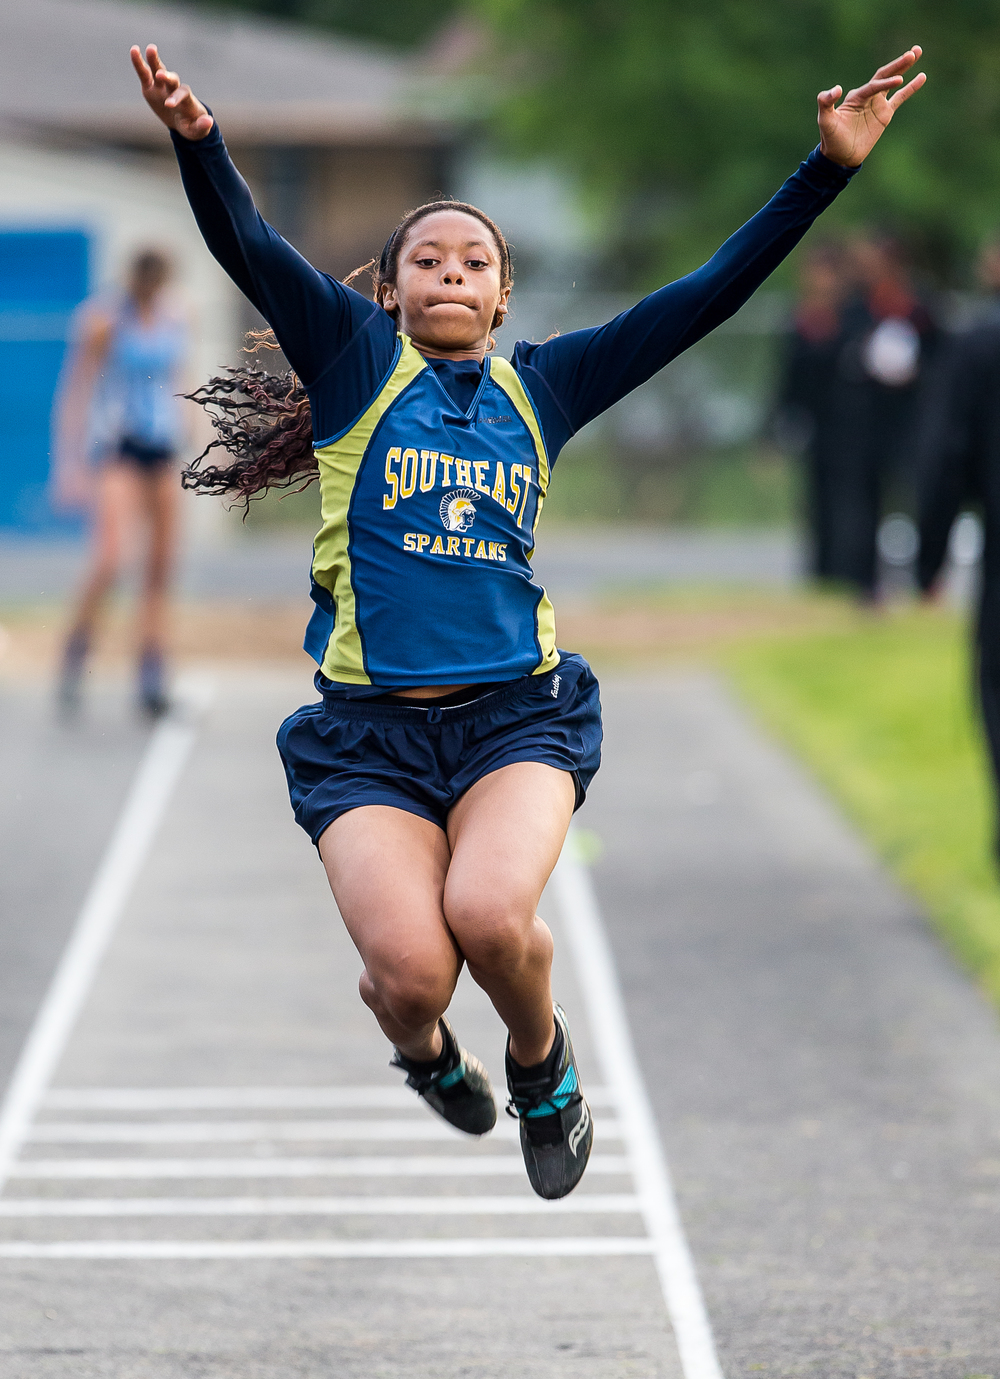 Southeast's Charlicia Watson competes in the Girls Triple Jump during the Girls Class 2A Sectional Track Meet at  Southeast High School, Thursday, May 14, 2015, in Springfield, Ill. Justin L. Fowler/The State Journal-Register